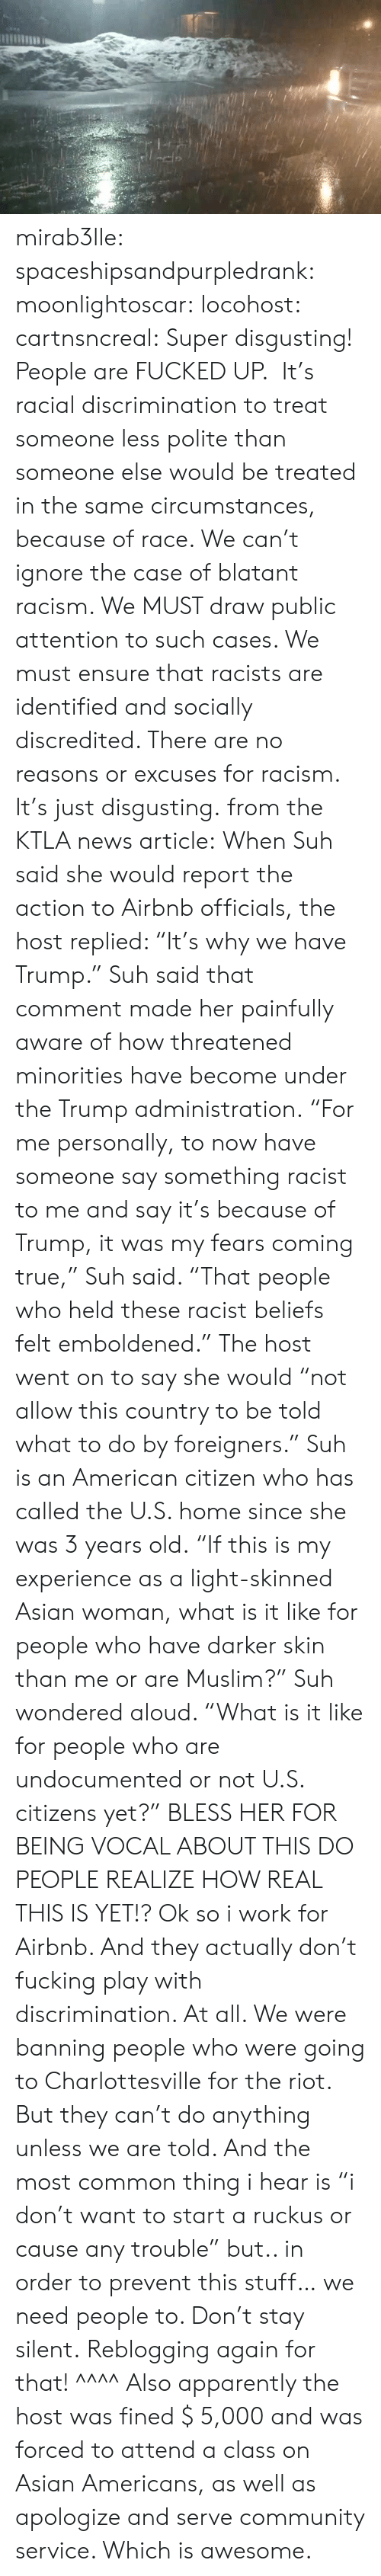 """Airbnb: mirab3lle:  spaceshipsandpurpledrank:   moonlightoscar:  locohost:  cartnsncreal:    Super disgusting! People are FUCKED UP. It's racial discrimination to treat someone less polite than someone else would be treated in the same circumstances, because of race. We can't ignore the case of blatant racism. We MUST draw public attention to such cases. We must ensure that racists are identified and socially discredited. There are no reasons or excuses for racism. It's just disgusting.  from the KTLA news article:  When Suh said she would report the action to Airbnb officials, the host replied: """"It's why we have Trump."""" Suh said that comment made her painfully aware of how threatened minorities have become under the Trump administration. """"For me personally, to now have someone say something racist to me and say it's because of Trump, it was my fears coming true,"""" Suh said. """"That people who held these racist beliefs felt emboldened."""" The host went on to say she would """"not allow this country to be told what to do by foreigners."""" Suh is an American citizen who has called the U.S. home since she was 3 years old. """"If this is my experience as a light-skinned Asian woman, what is it like for people who have darker skin than me or are Muslim?"""" Suh wondered aloud. """"What is it like for people who are undocumented or not U.S. citizens yet?""""    BLESS HER FOR BEING VOCAL ABOUT THIS DO PEOPLE REALIZE HOW REAL THIS IS YET!?   Ok so i work for Airbnb.  And they actually don't fucking play with discrimination. At all. We were banning people who were going to Charlottesville for the riot.  But they can't do anything unless we are told. And the most common thing i hear is """"i don't want to start a ruckus or cause any trouble"""" but.. in order to prevent this stuff… we need people to. Don't stay silent.   Reblogging again for that! ^^^^ Also apparently the host was fined $ 5,000 and was forced to attend a class on Asian Americans, as well as apologize and serve community service. Which i"""